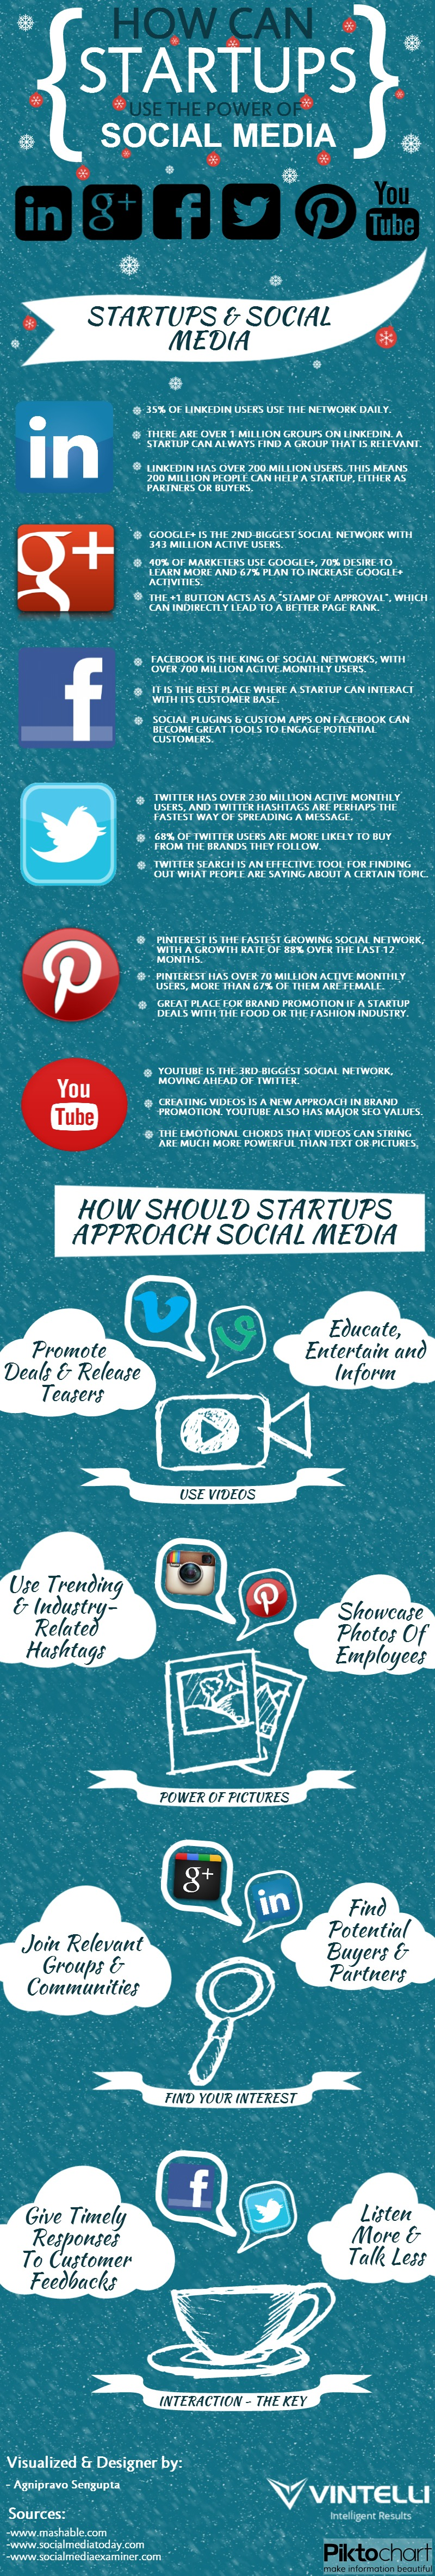 How Can Startups Use The Power Of Social Media (Infographic) image How Can Startups Use The Power Of Social Media